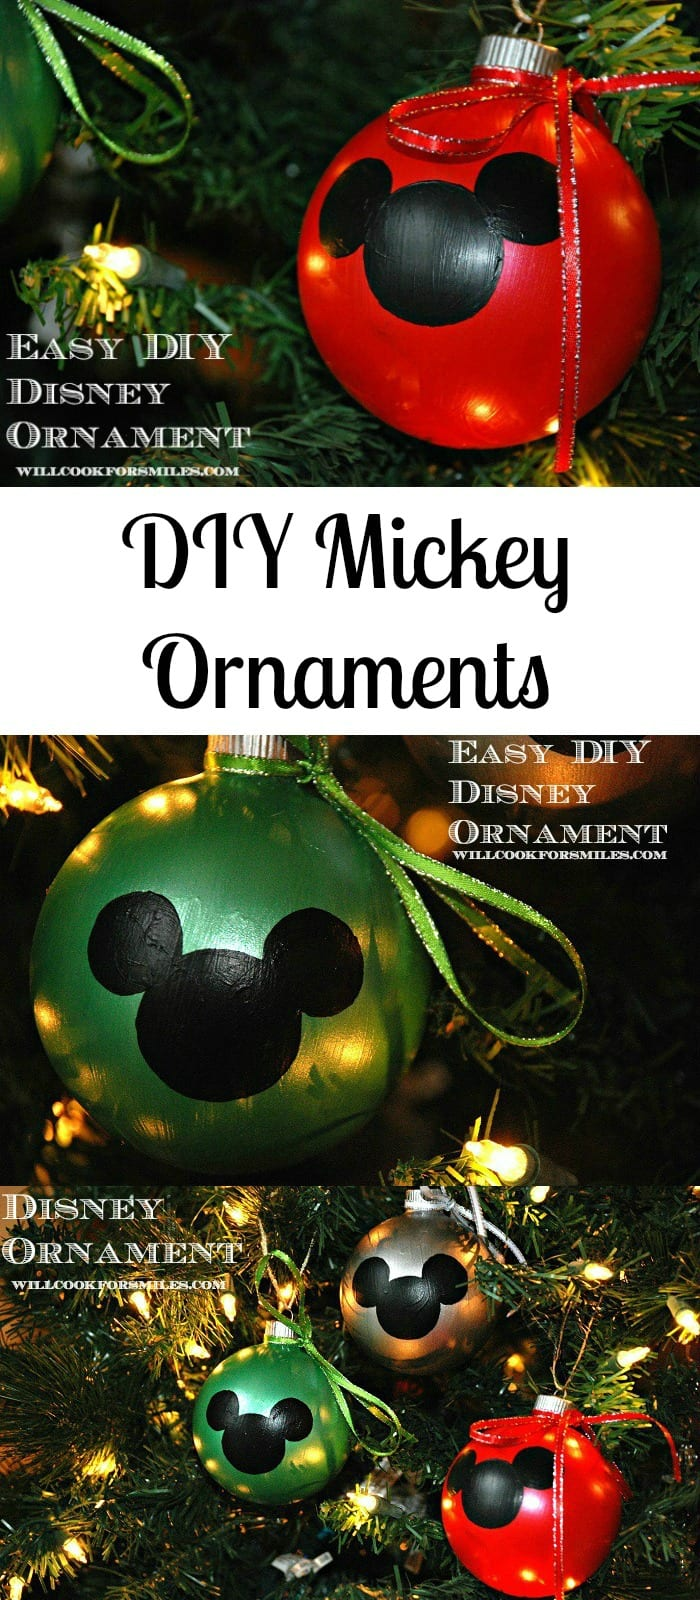 Easy DIY Disney Ornaments  from willcookforsmiles.com